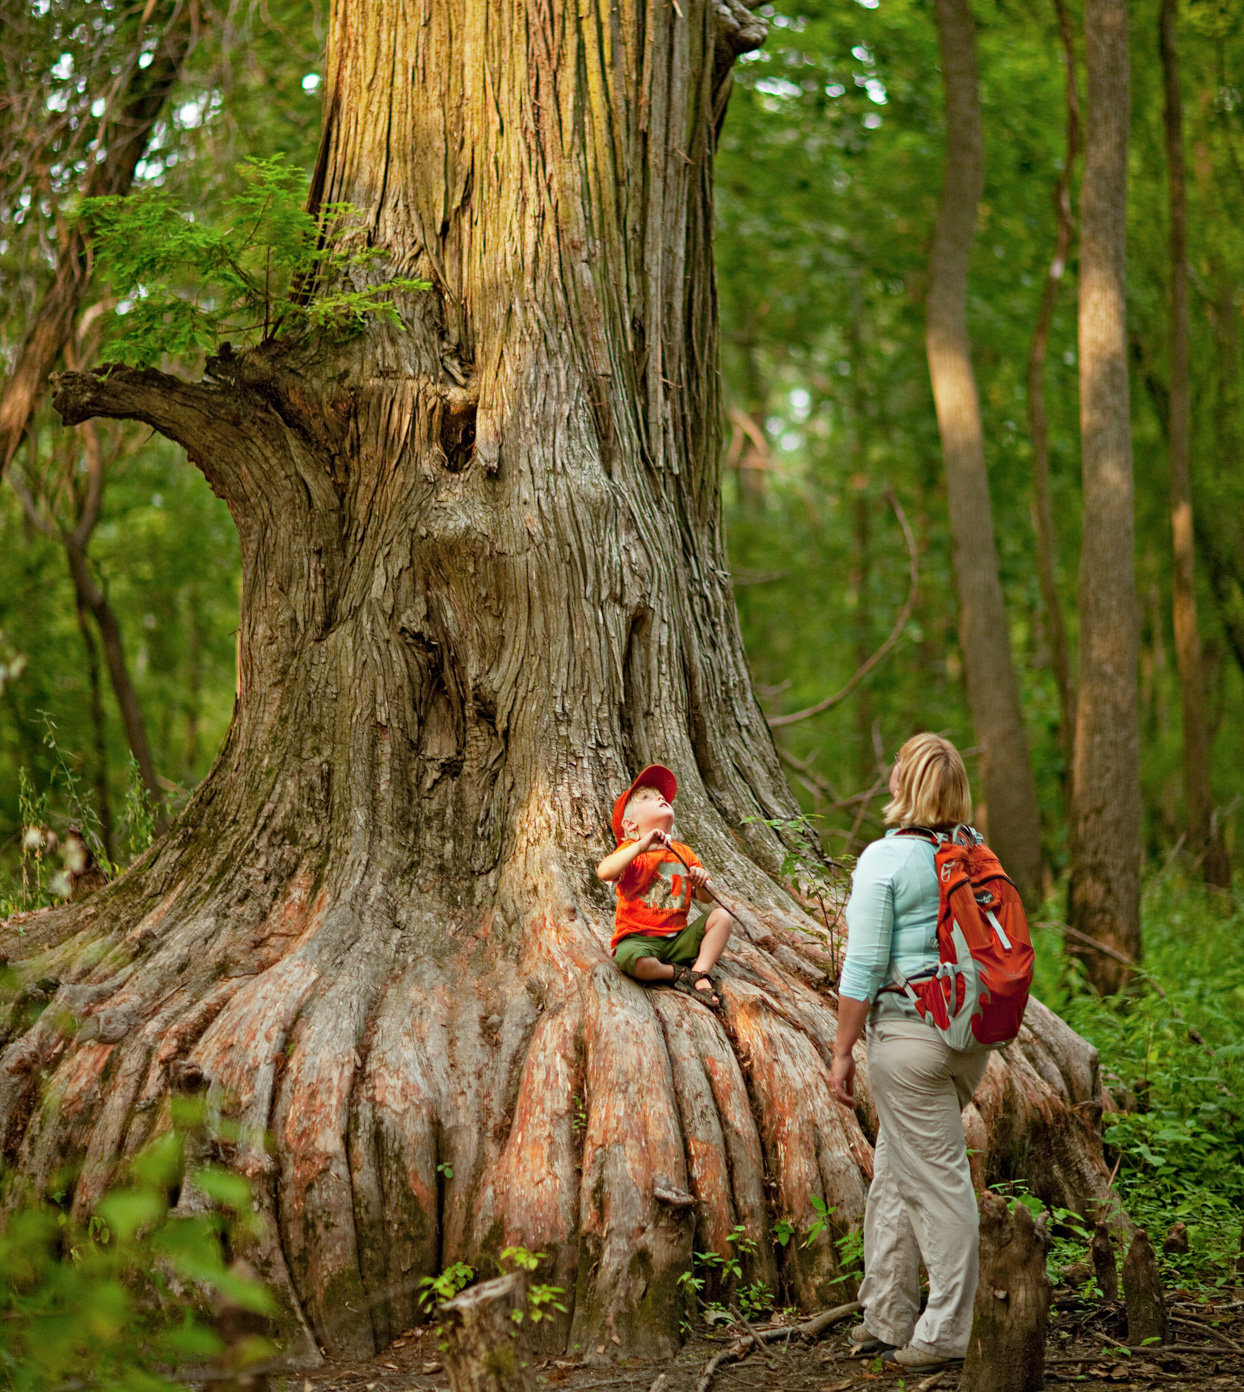 Woman and Child at Cypress Tree